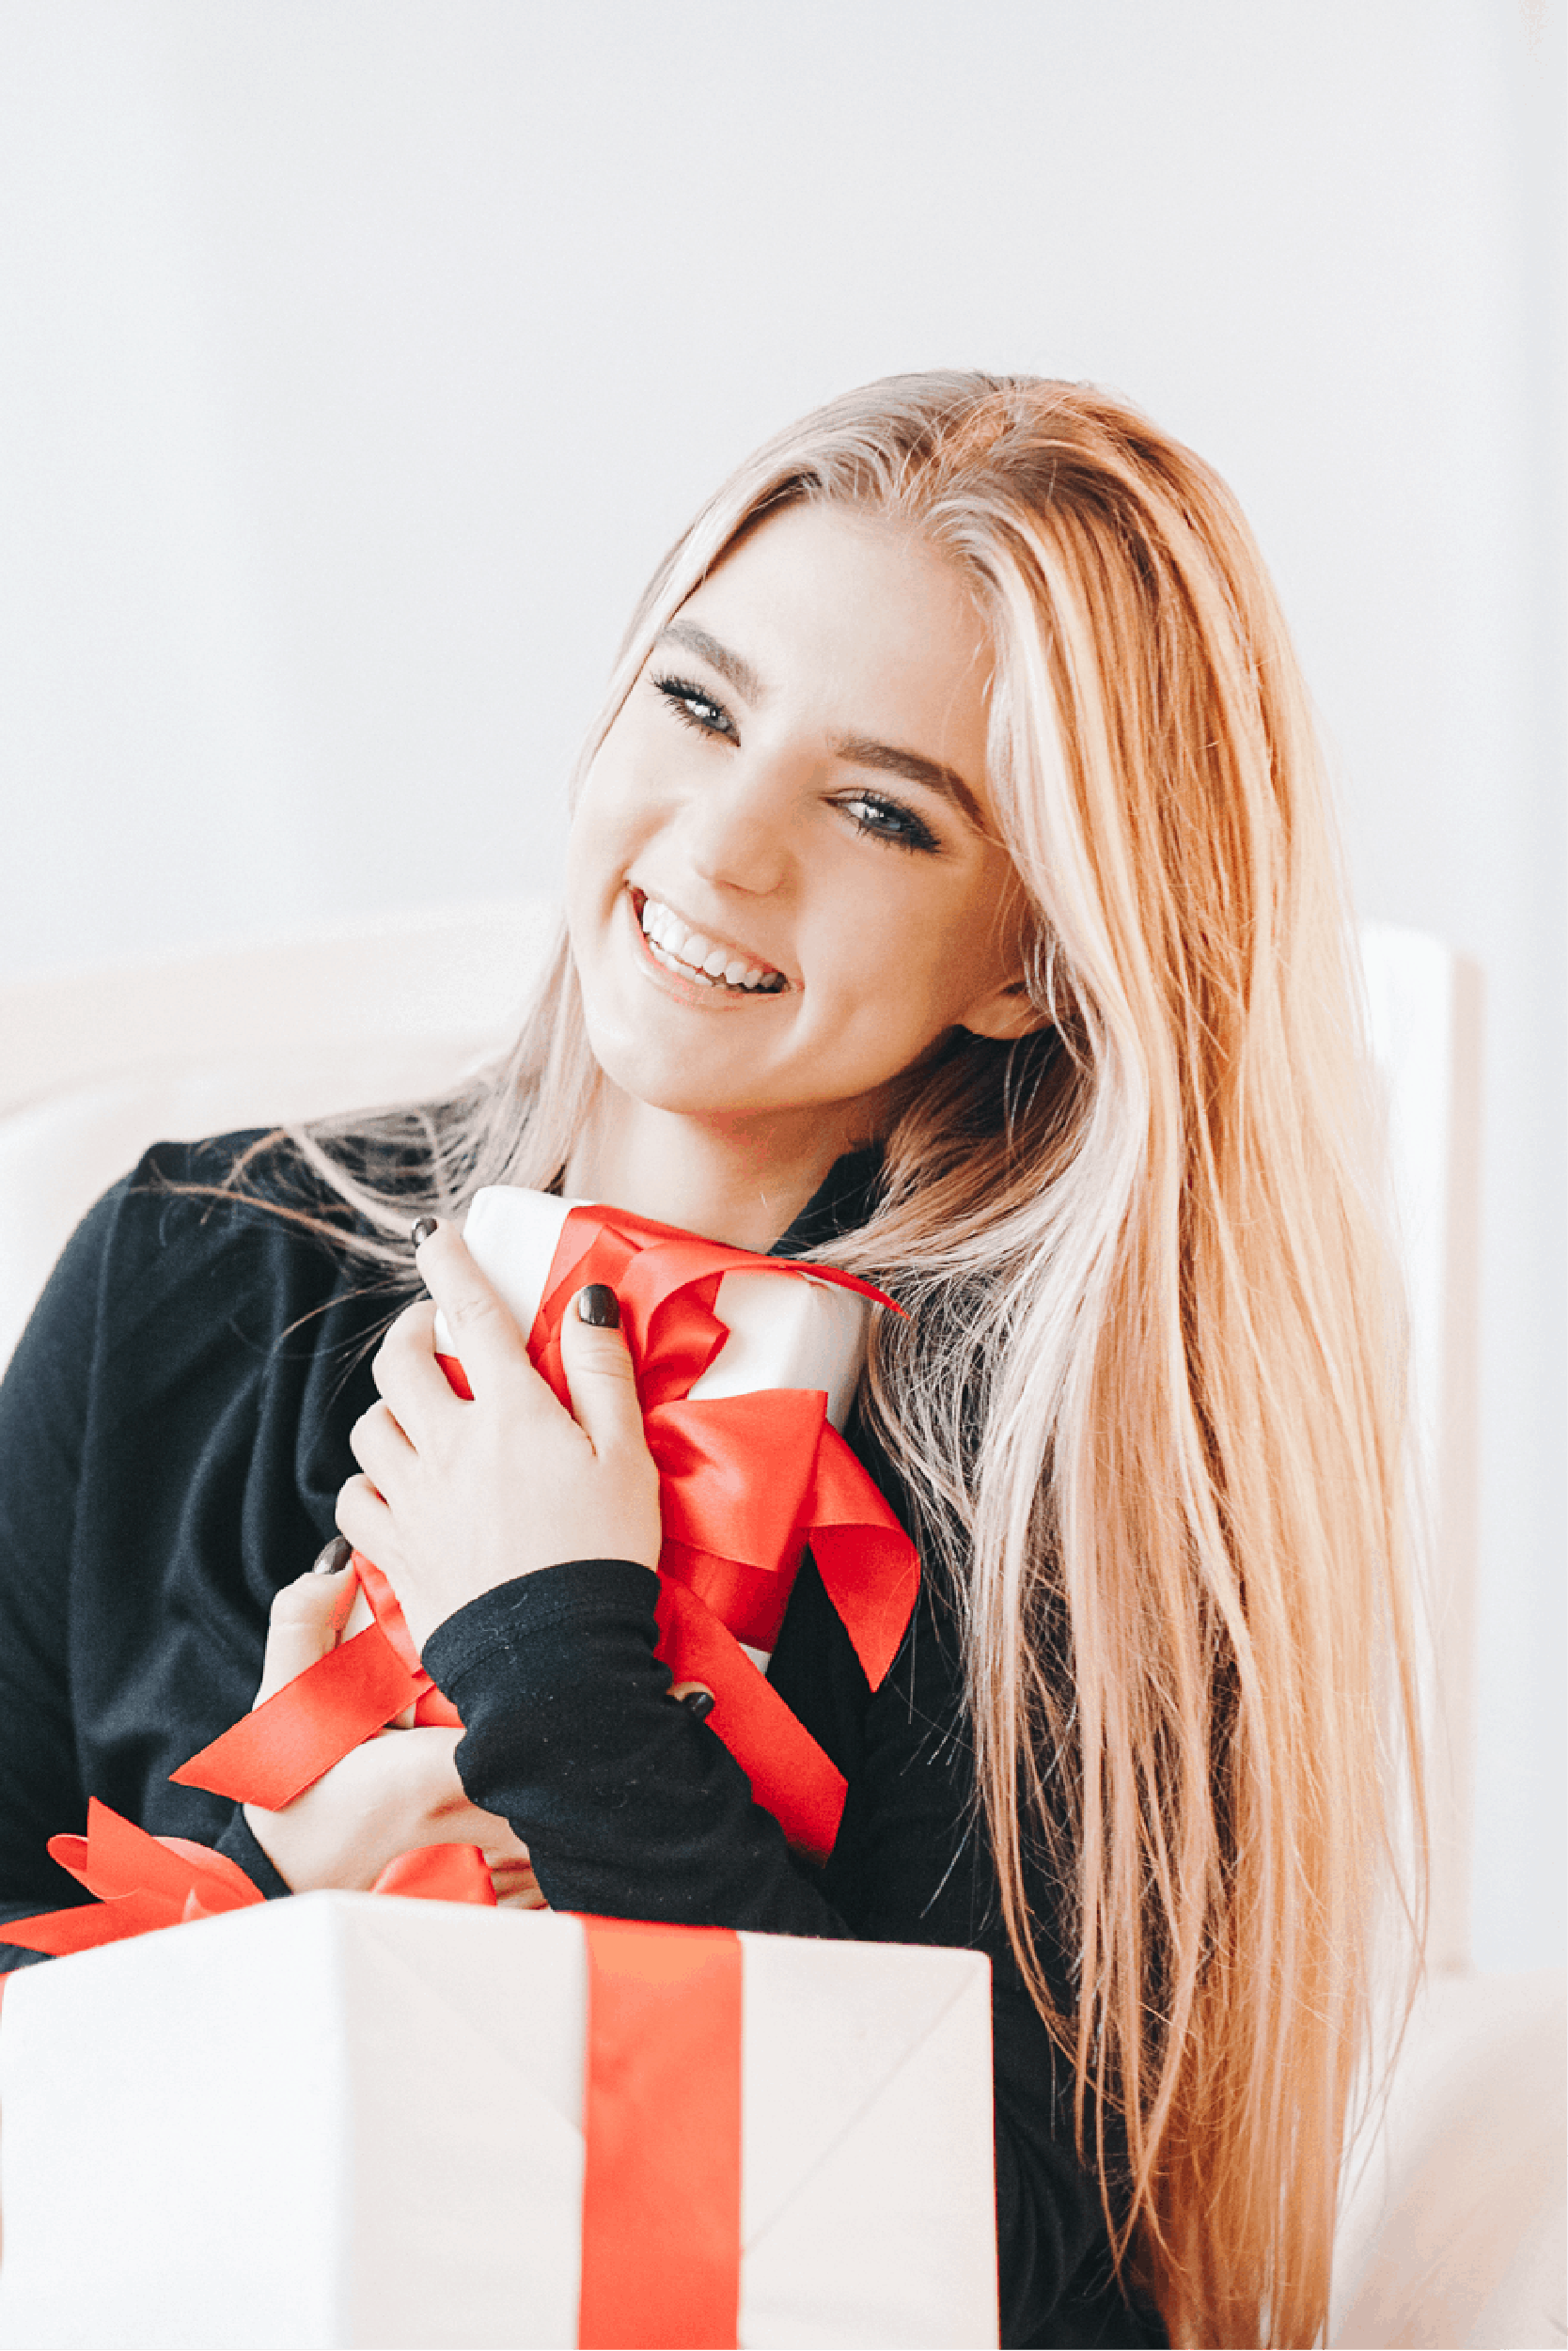 30 Most Popular Christmas Gifts For College Girl By Sophia Lee